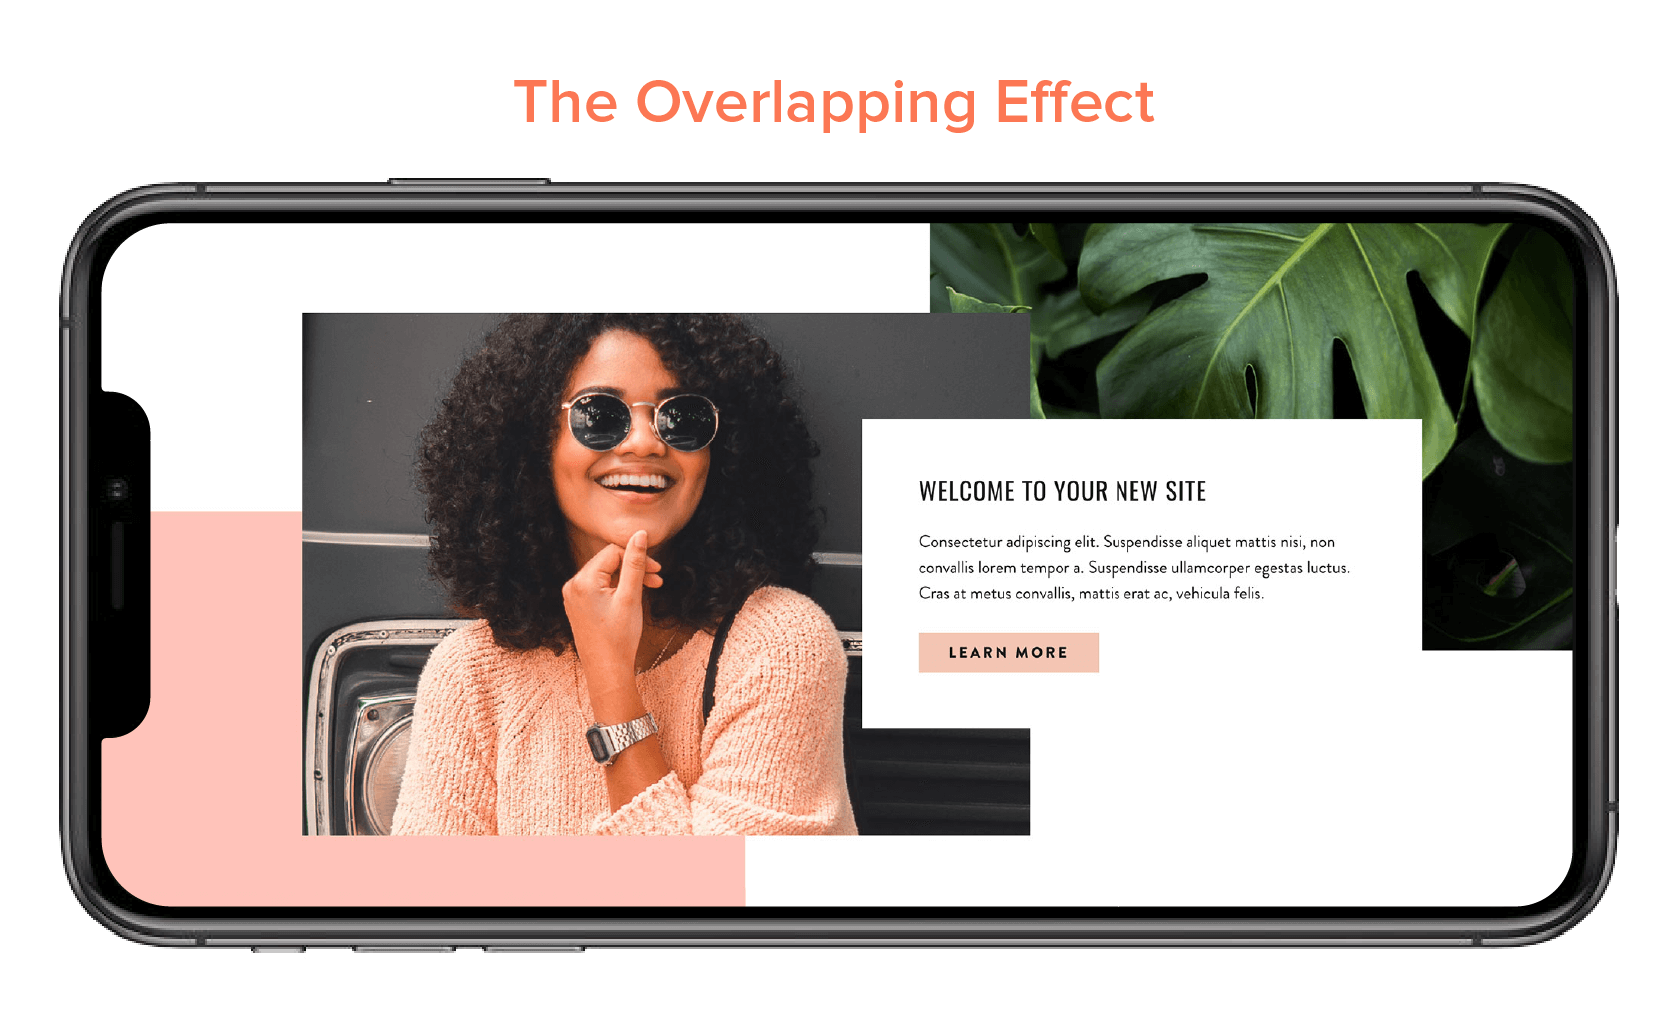 THE OVERLAPPING EFFECT